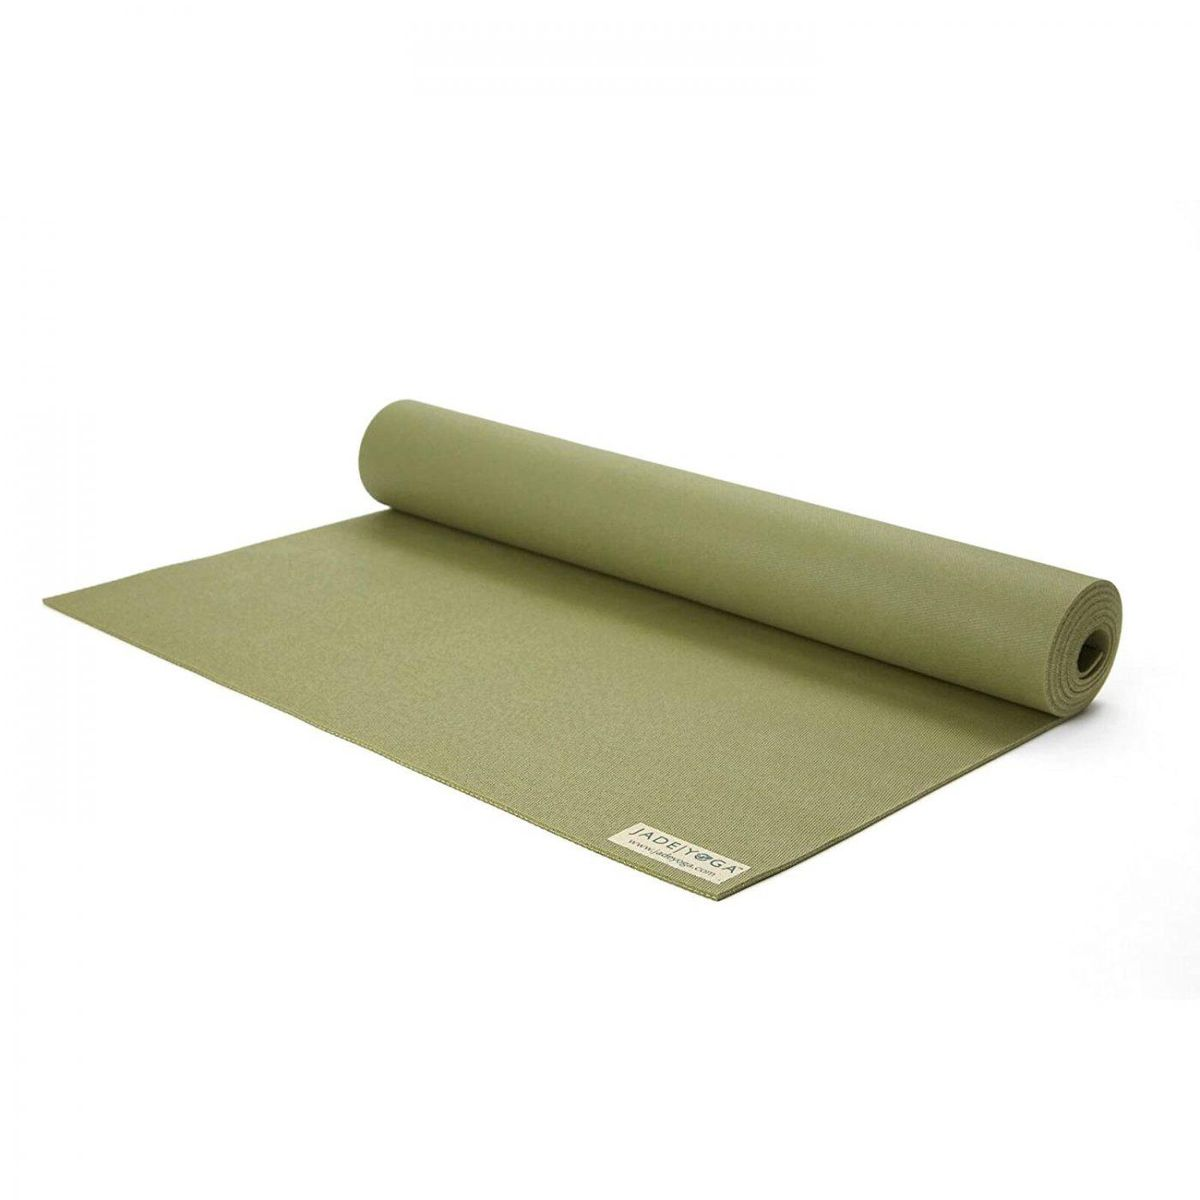 Travel Yoga Mat in Olive